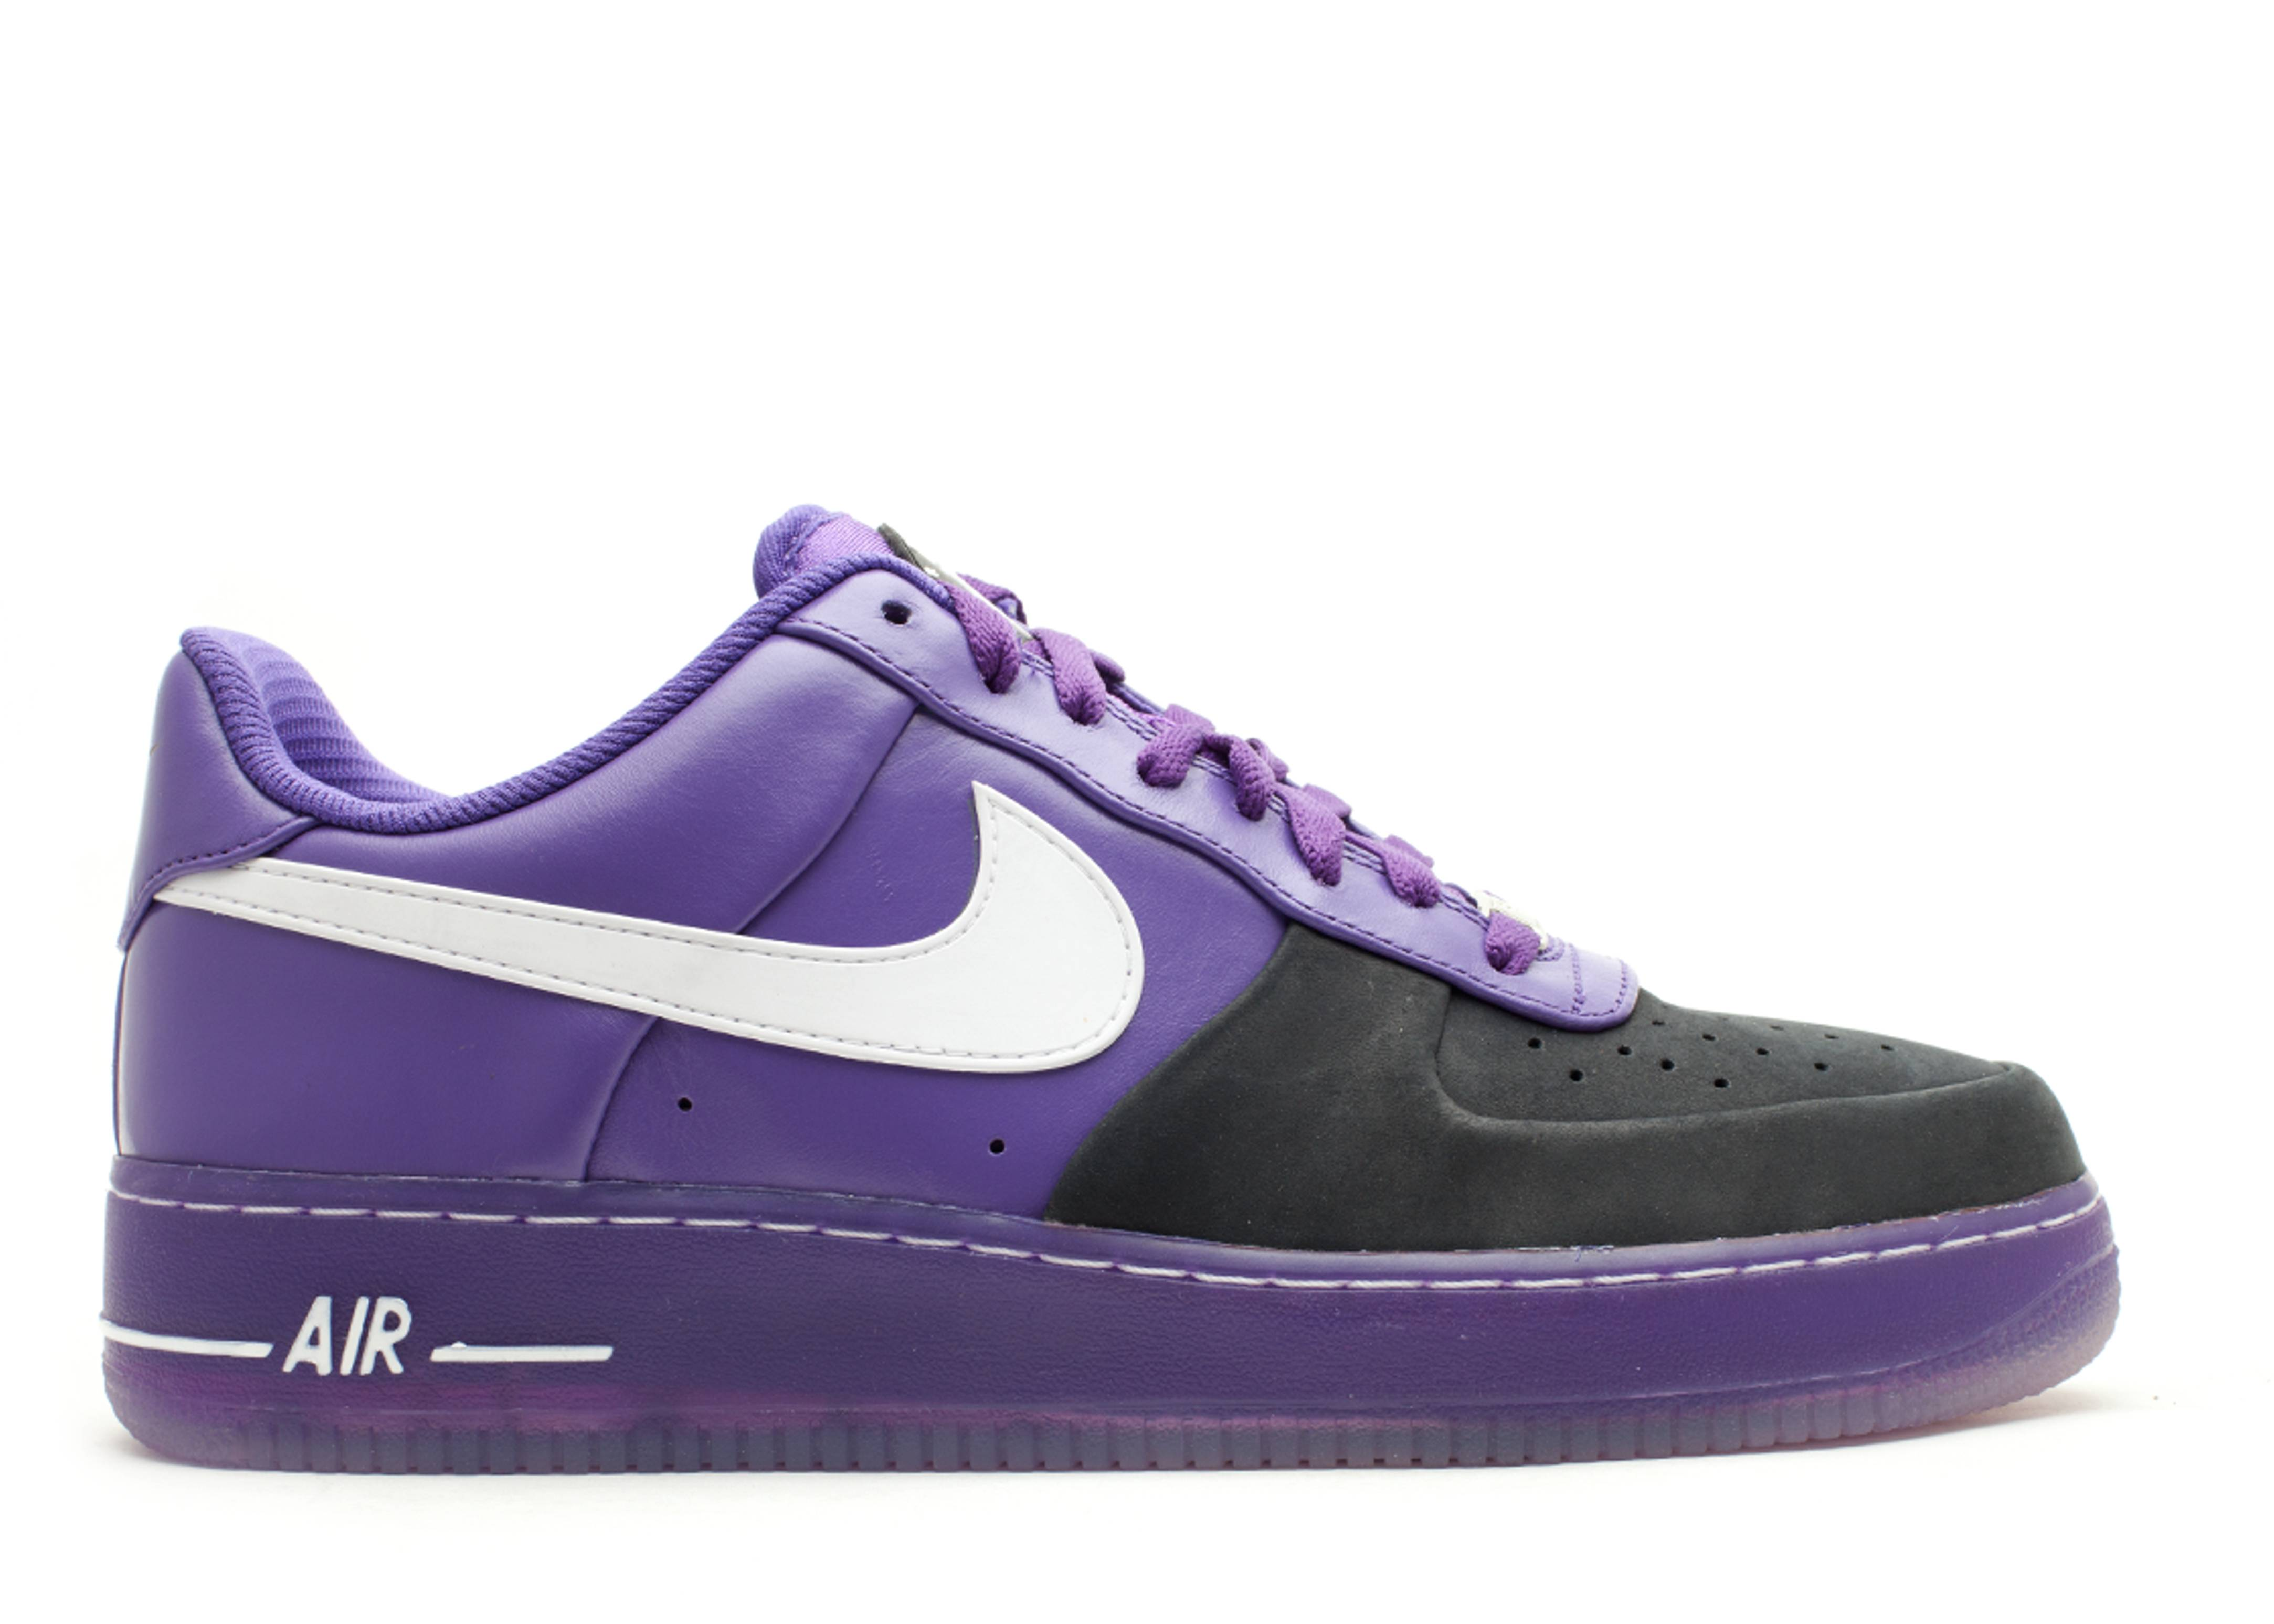 """air force 1 low supreme sp 09 """"hurache """"asia release"""""""""""